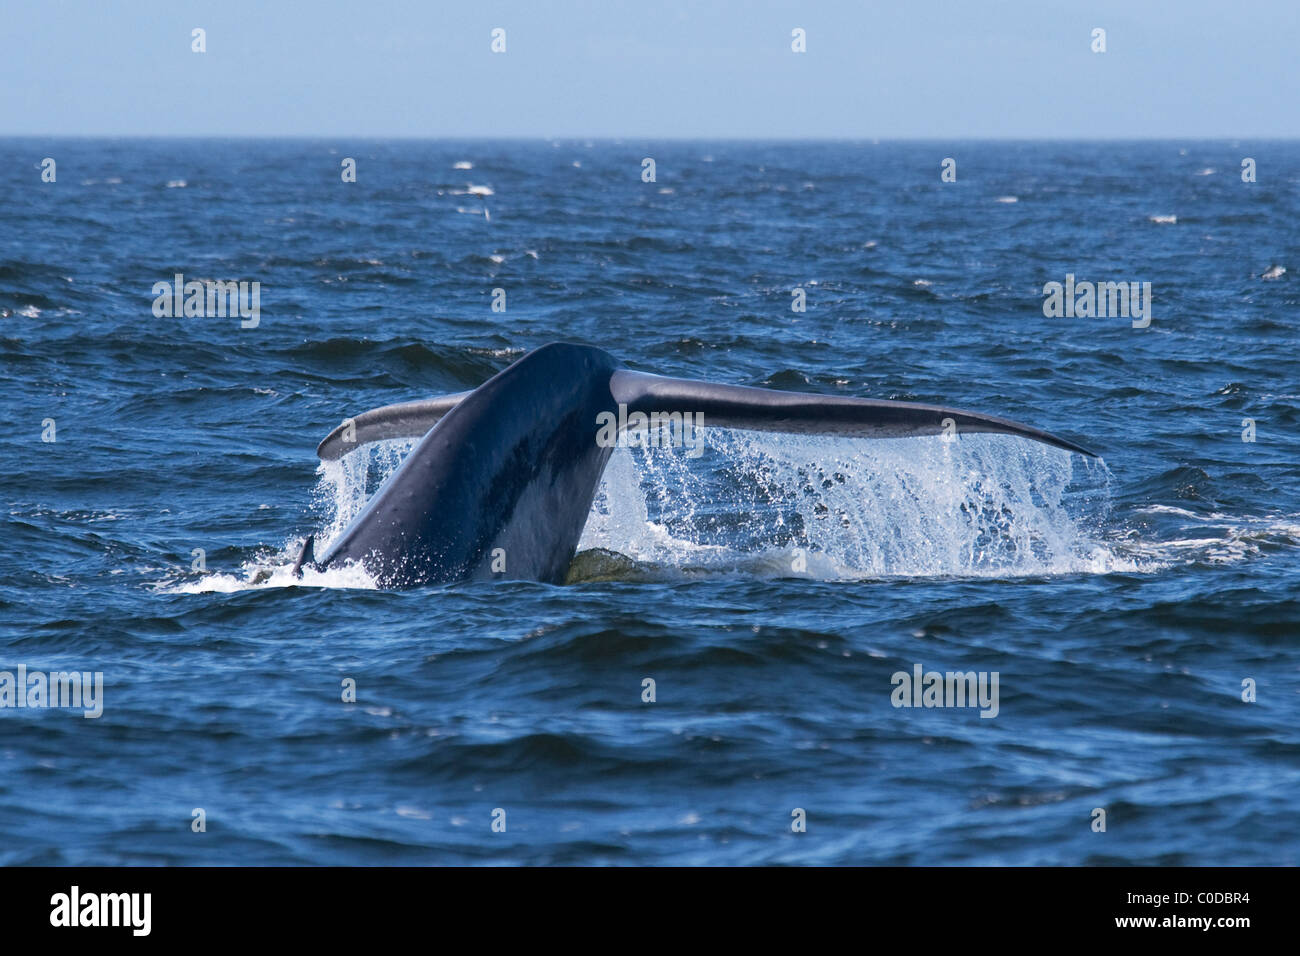 Blue Whale (Balaenoptera Musculus) adult animal fluking. Monterey, California, Pacific Ocean. - Stock Image